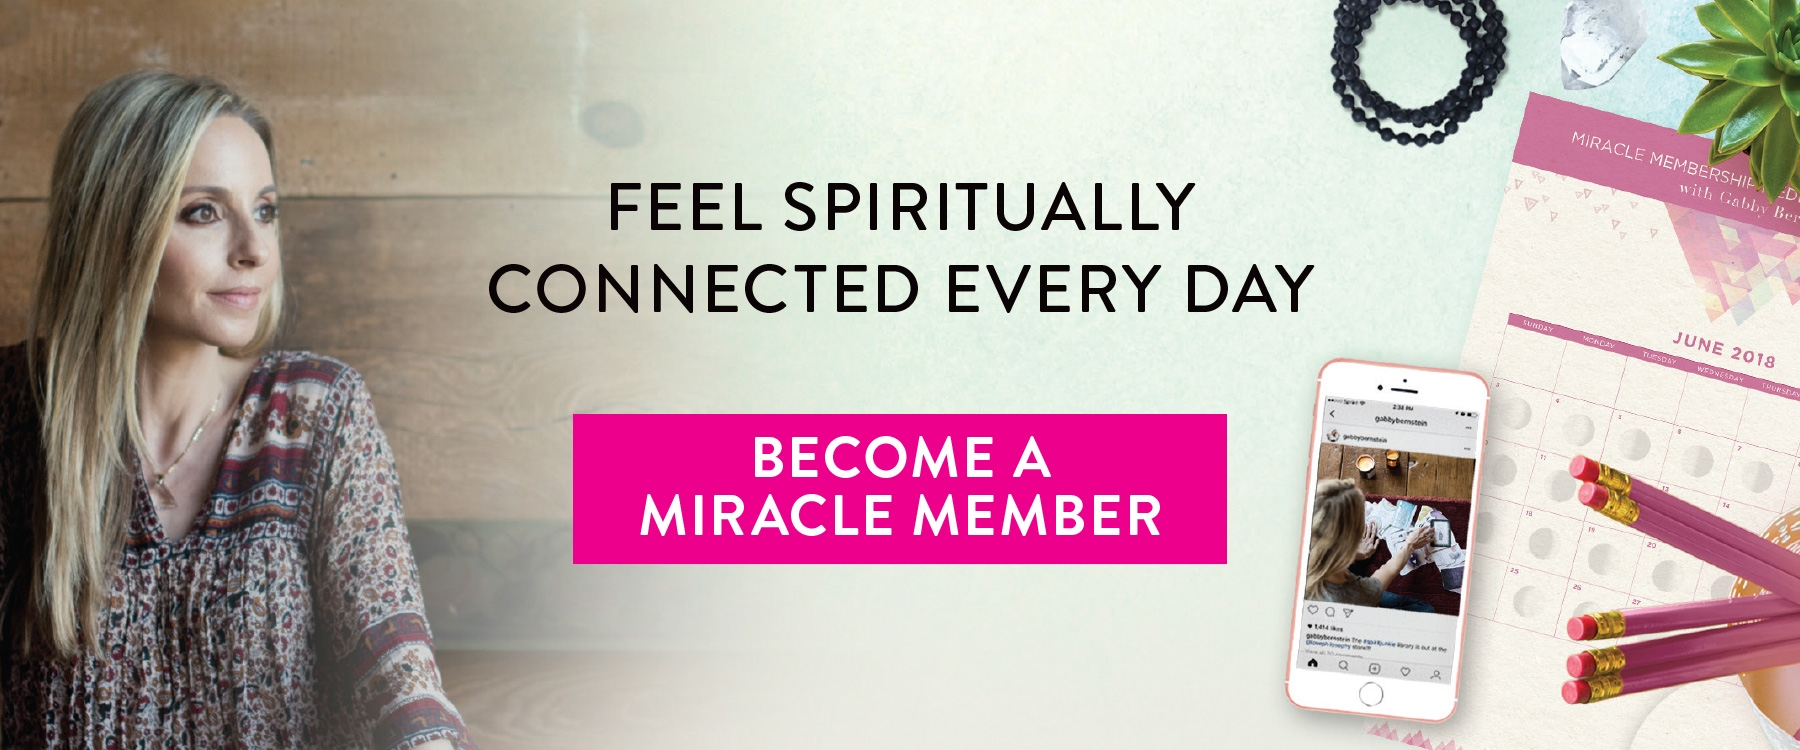 Feel spiritually connected every day so you can live a life beyond your wildest dreams | Join Gabby Bernstein's Miracle Membership